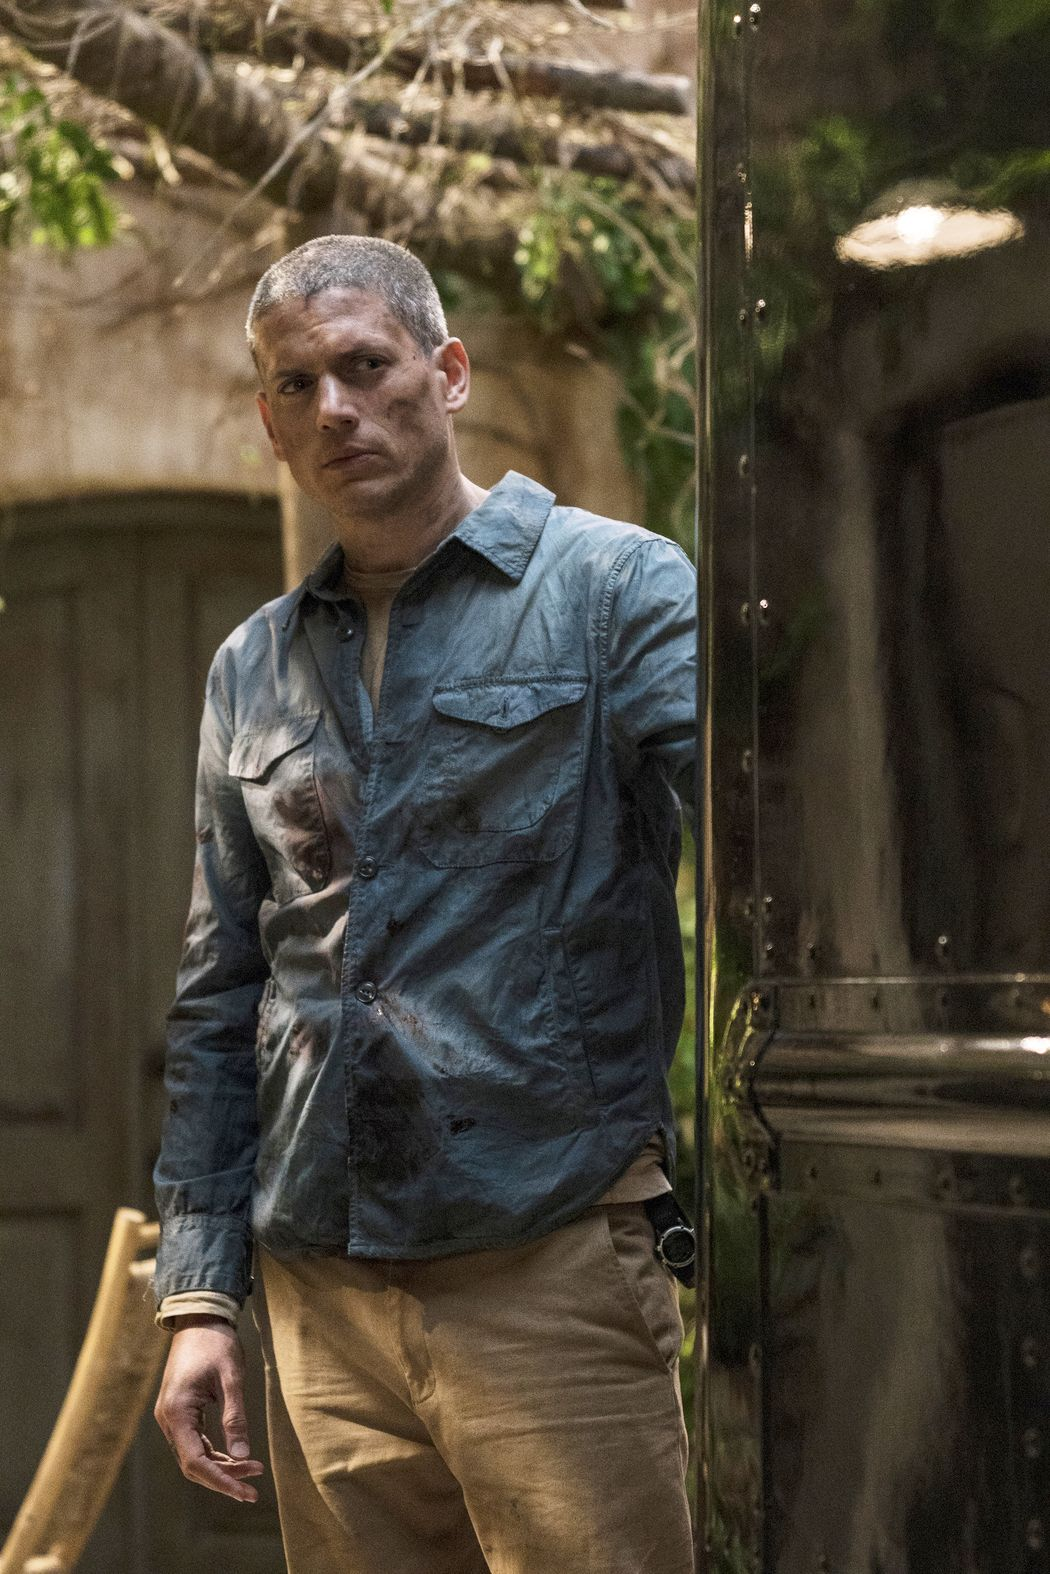 Prison Break's Wentworth Miller is making his TV comeback, but it's not the long-awaited season 6